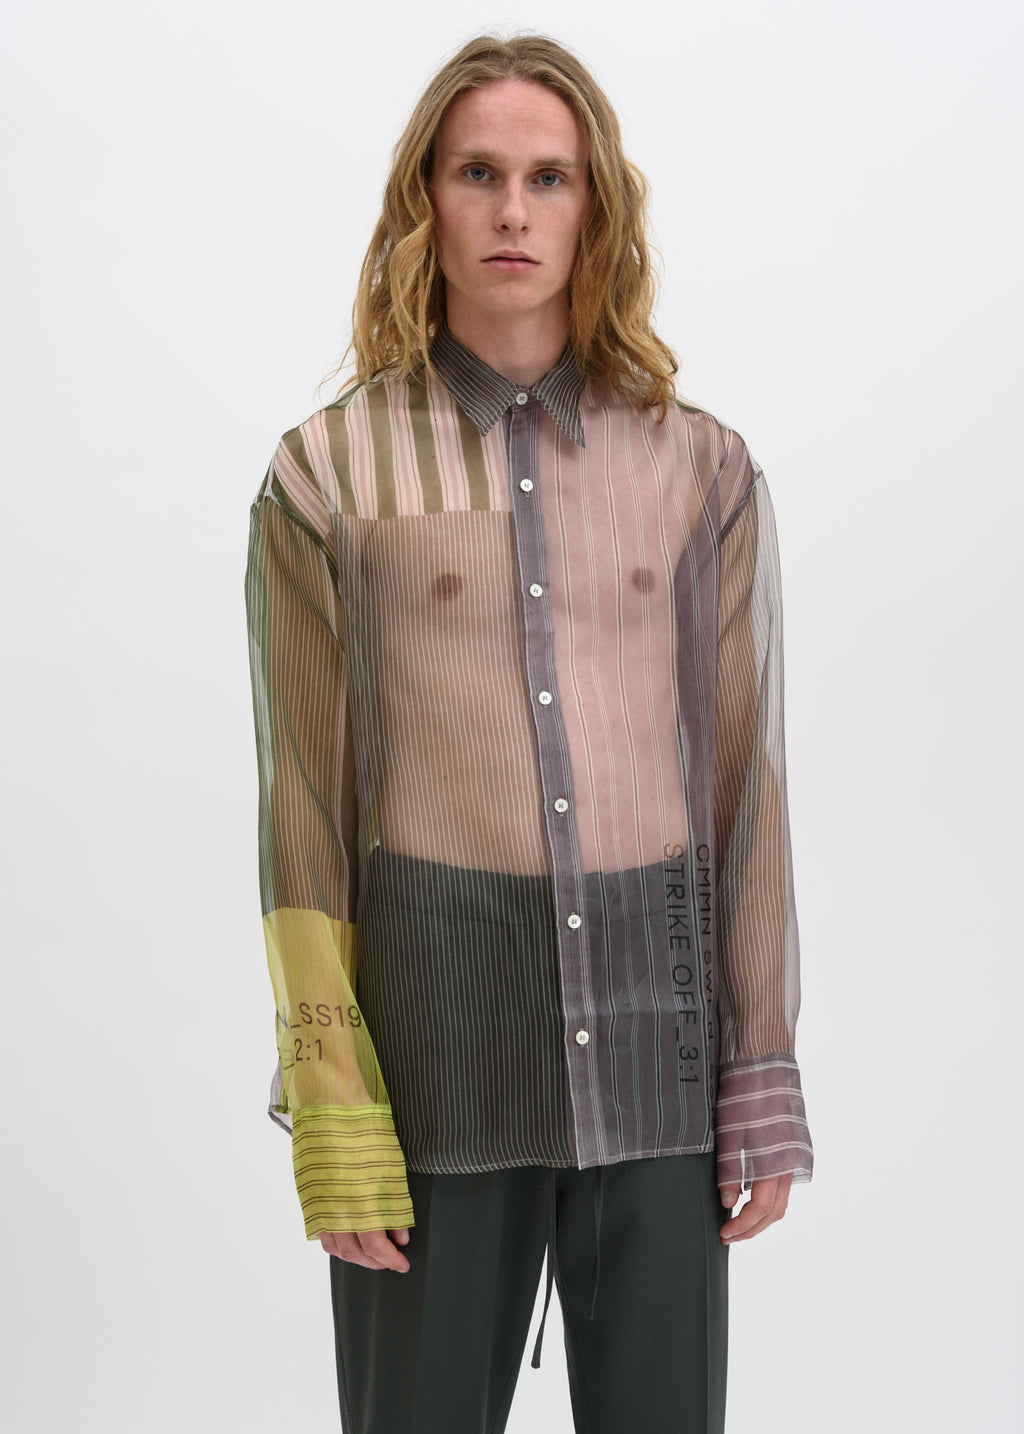 Cmmn Swdn, Grey Cecil Strike Off Silk Shirt, 017 Shop